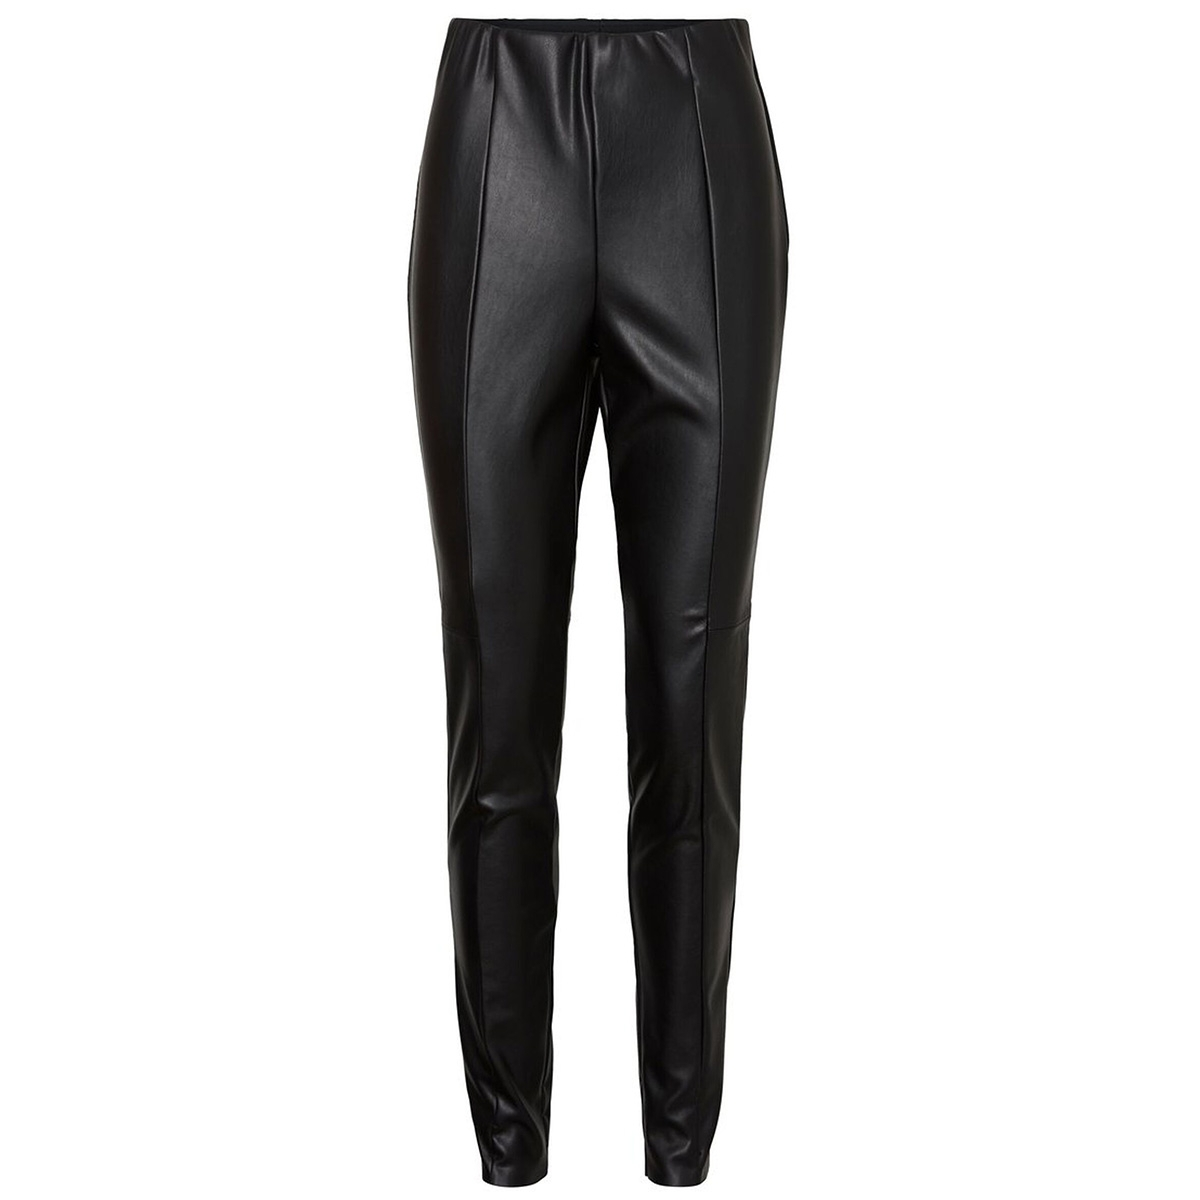 nmmilan legging 7 27009211 noisy may legging black